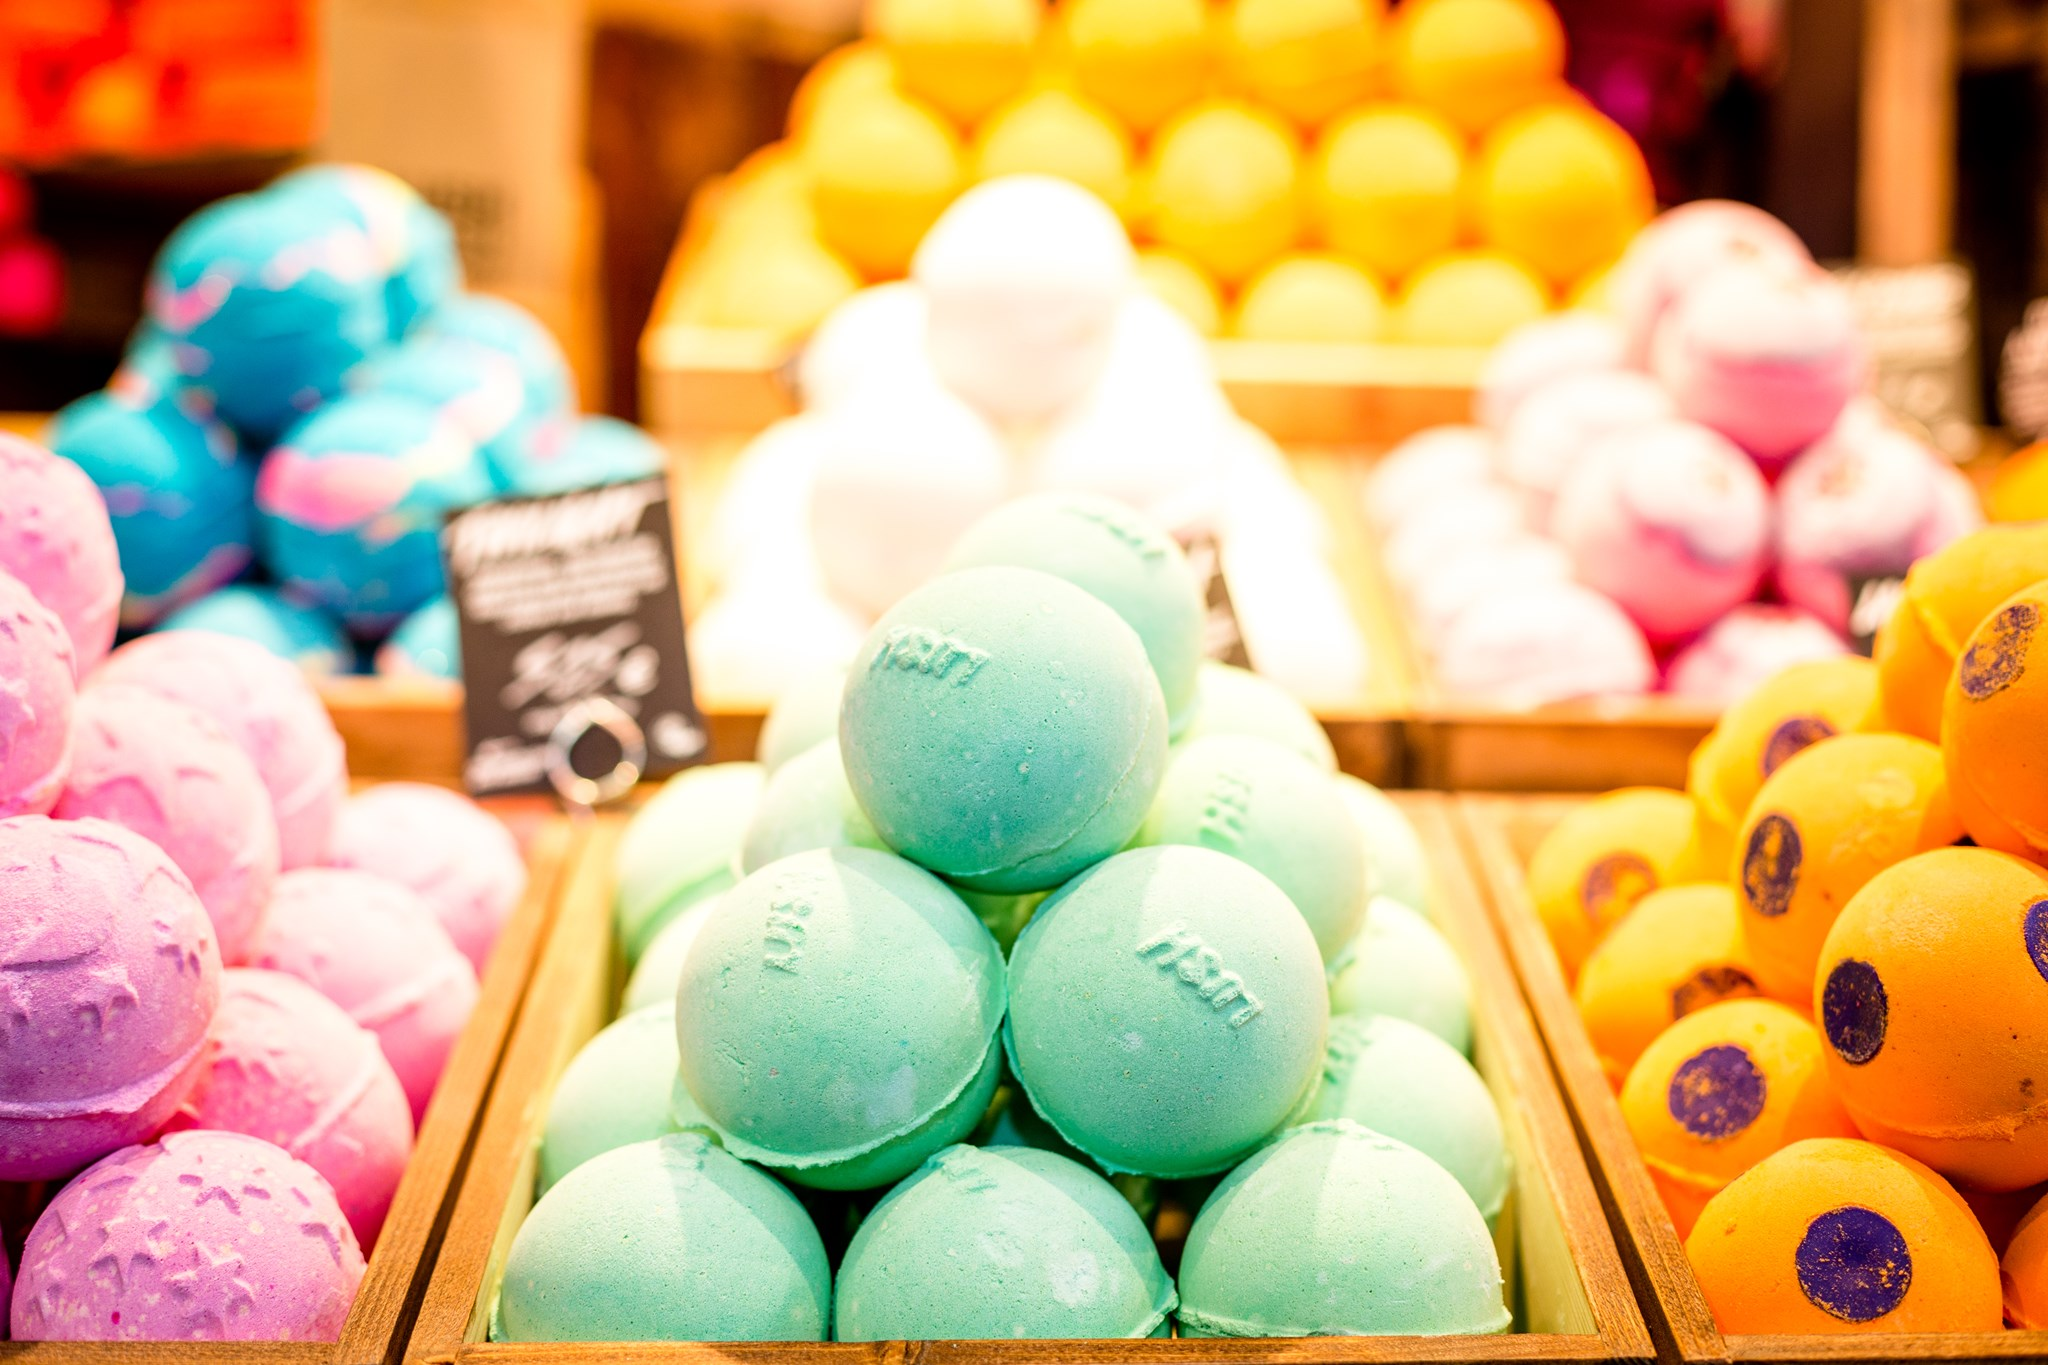 lush_reopening_HH_seltmann_003 (Copy)